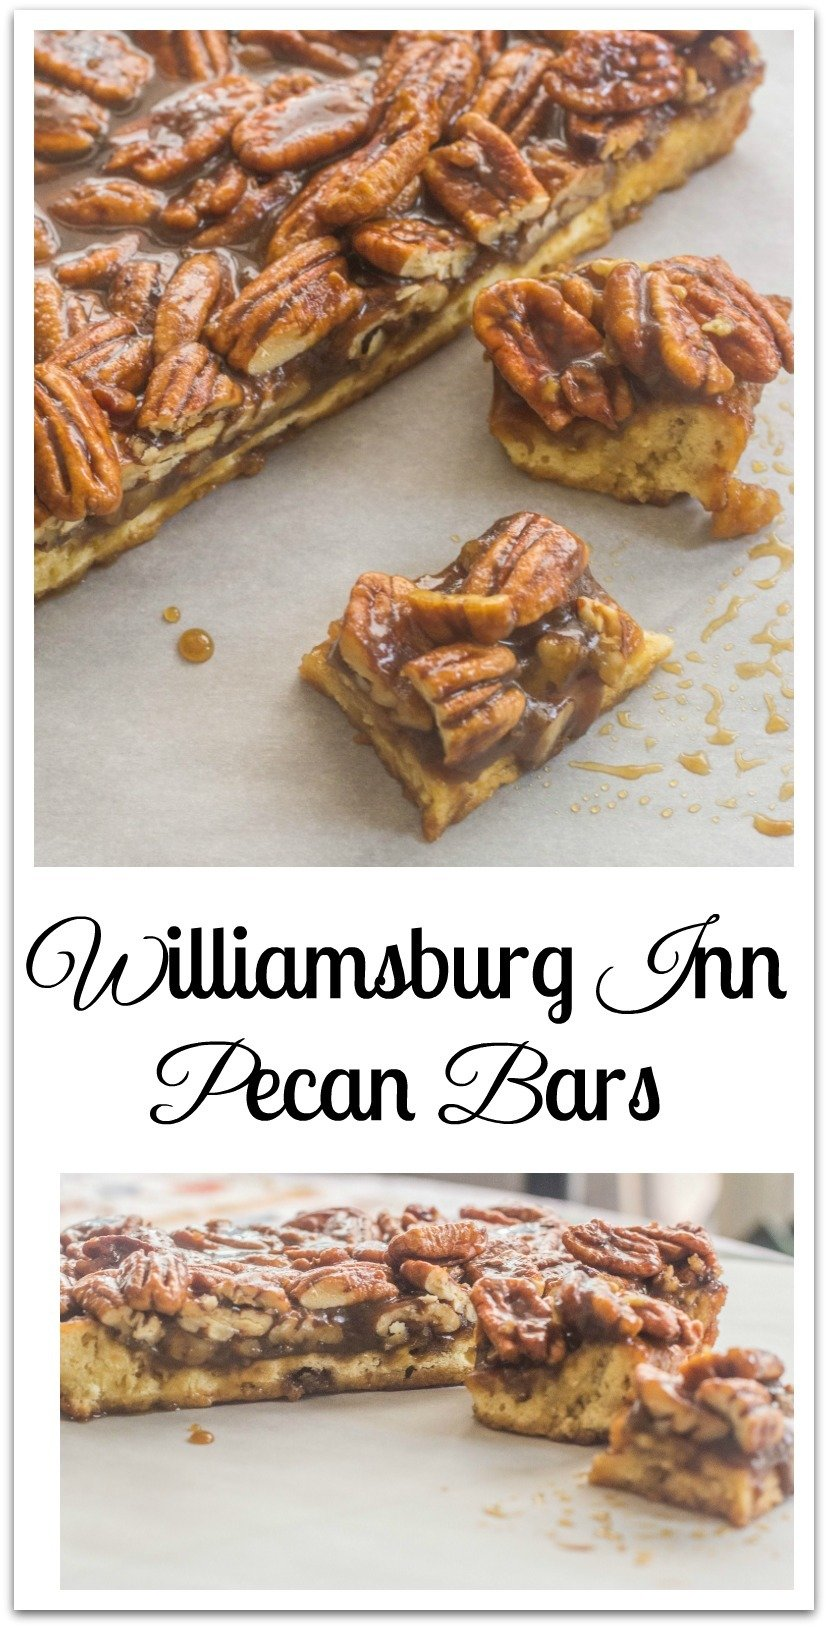 I found many interesting dishes and several we ordered in the taverns. The recipe that caught my attention right away was Williamsburg Inn Pecan Bars. It's a pecan pie like filling sitting on a lemony shortbread crust. #PecanBars #FavoriteRecipes